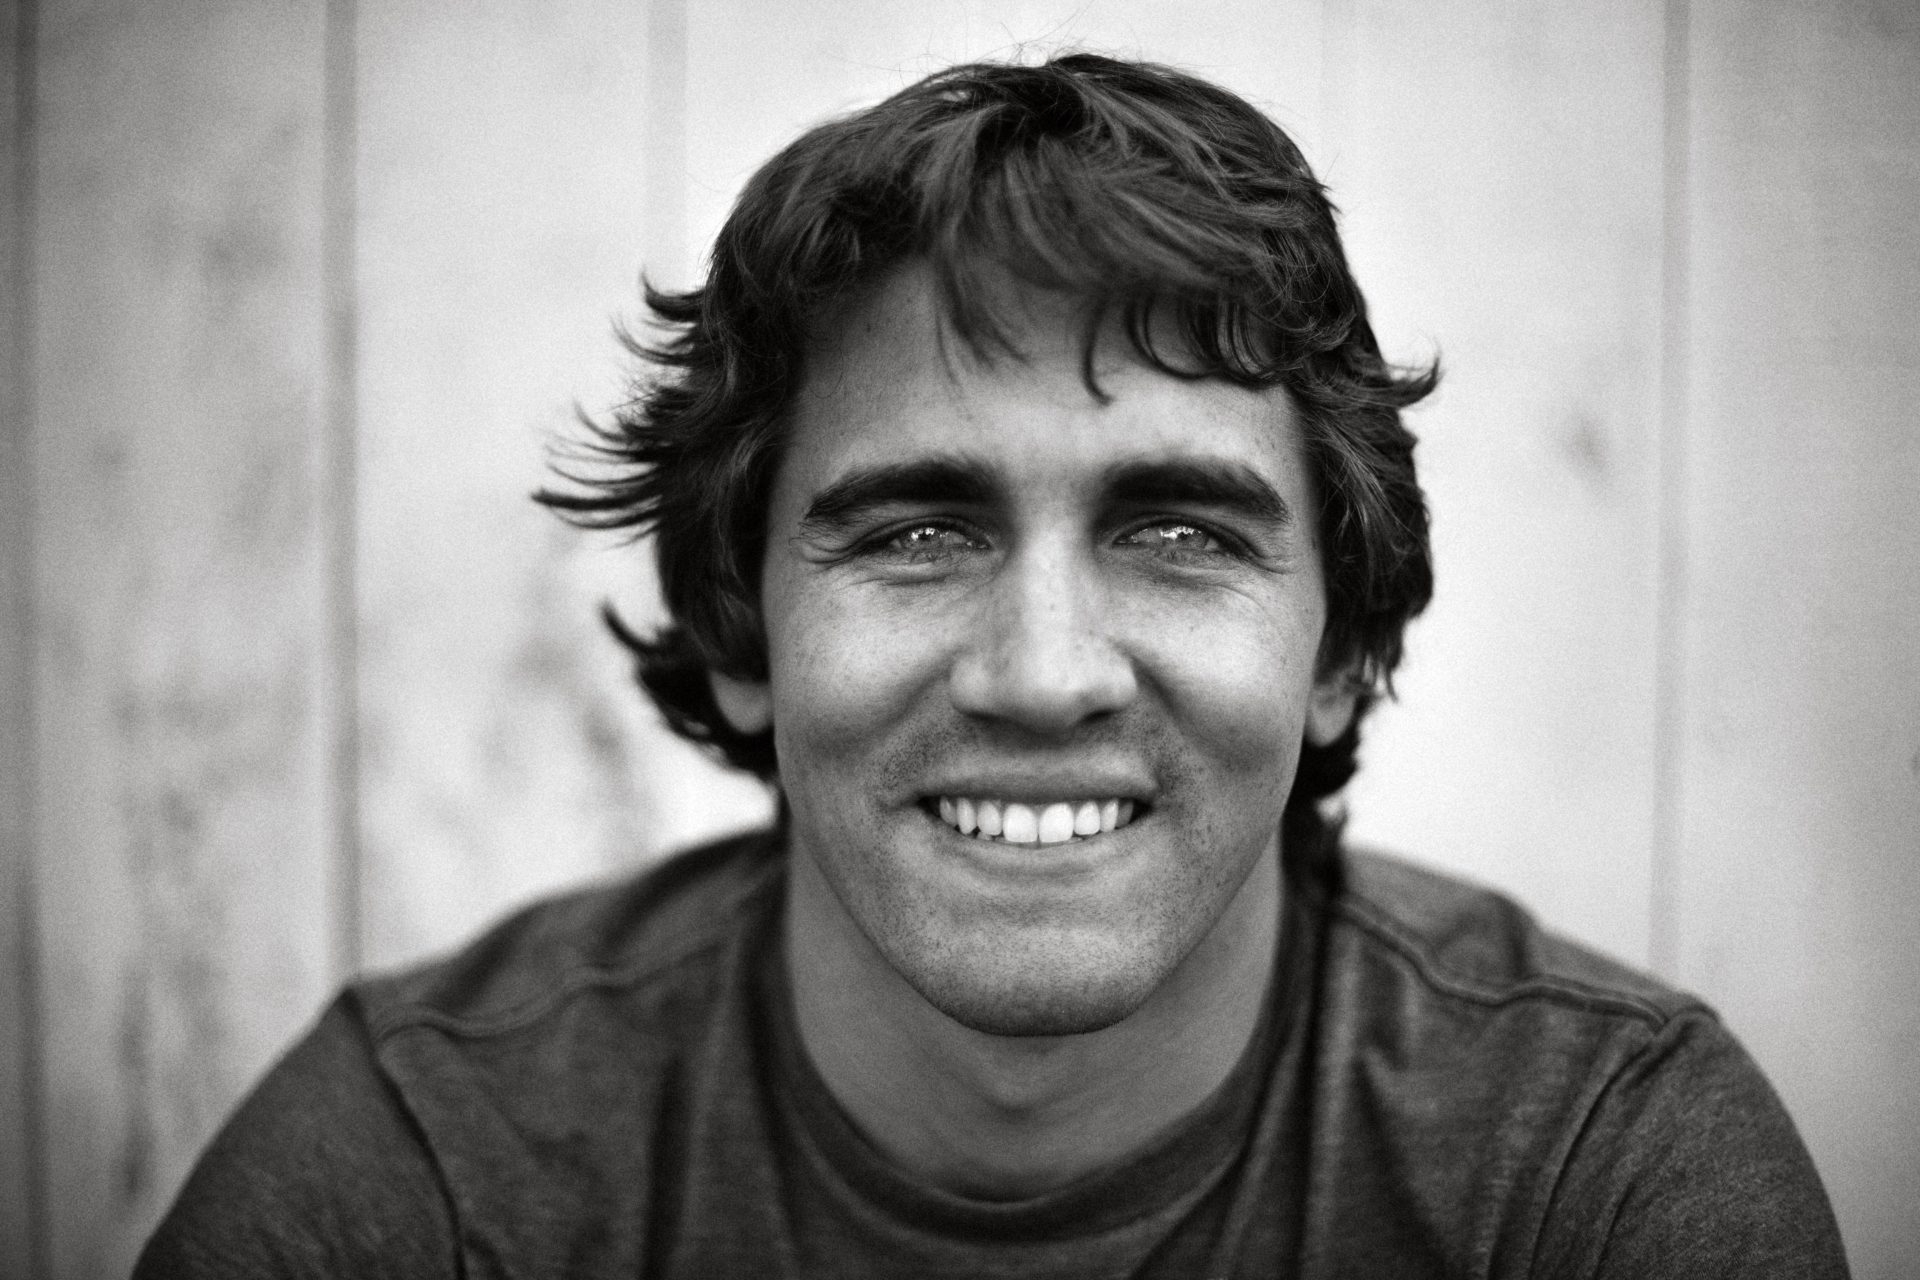 Big wave surfing legend Greg Long